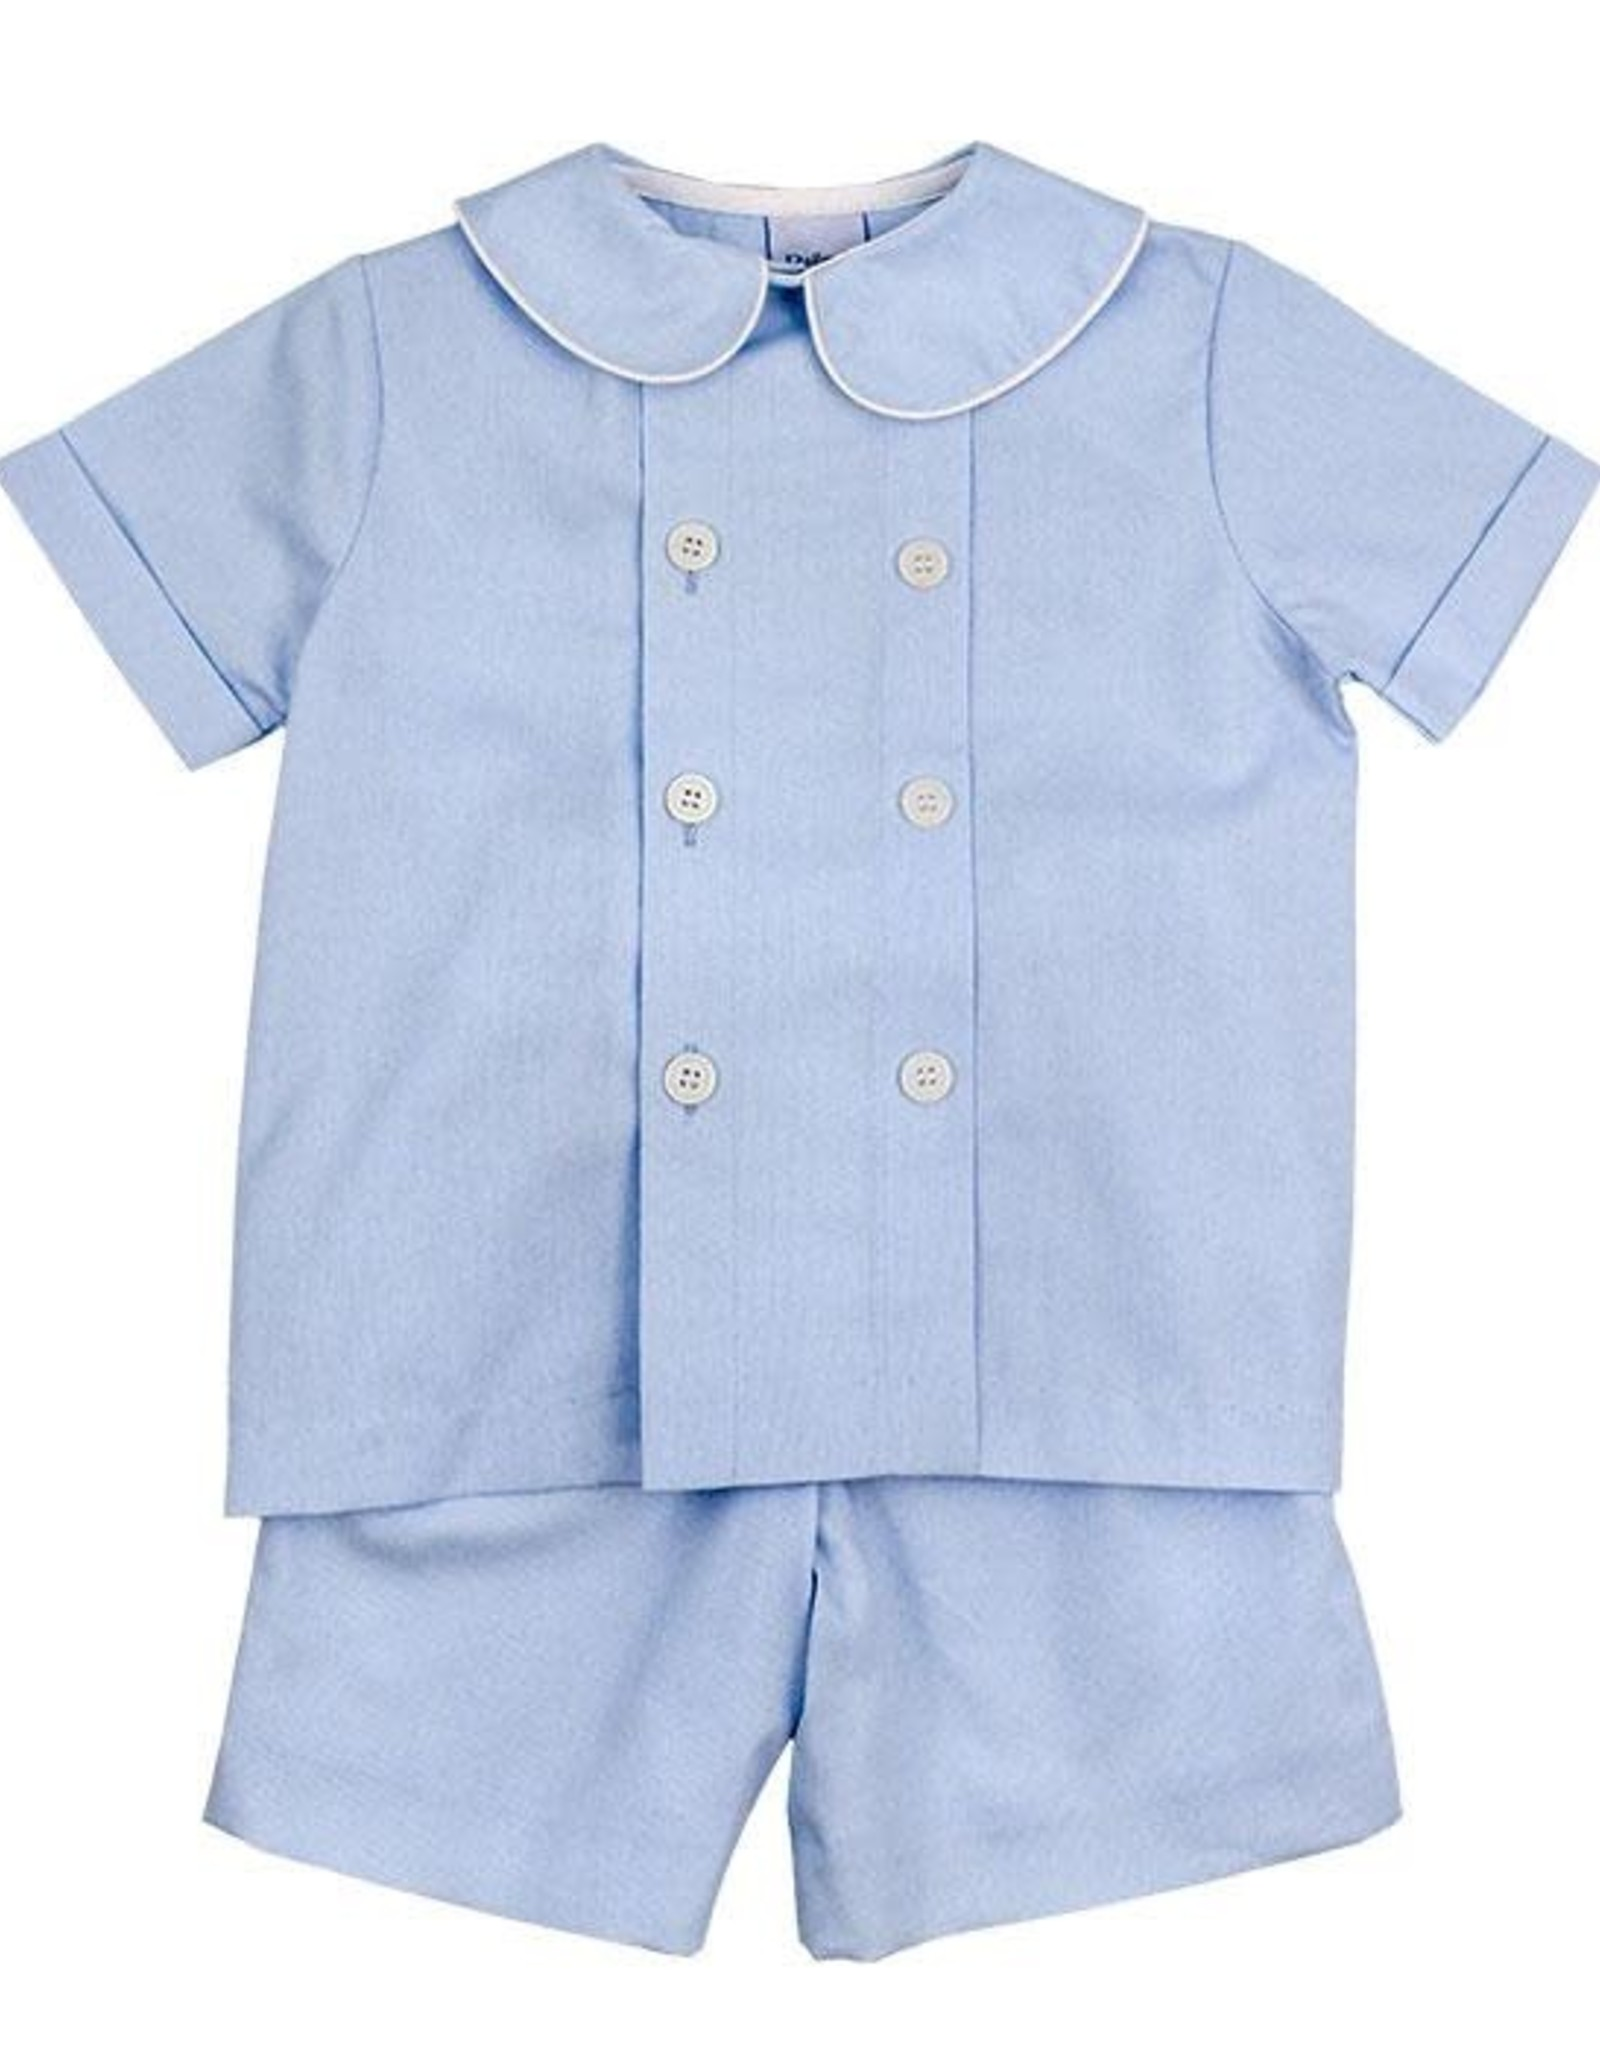 The Bailey Boys Seaside Pinwhale Dressy Short Set